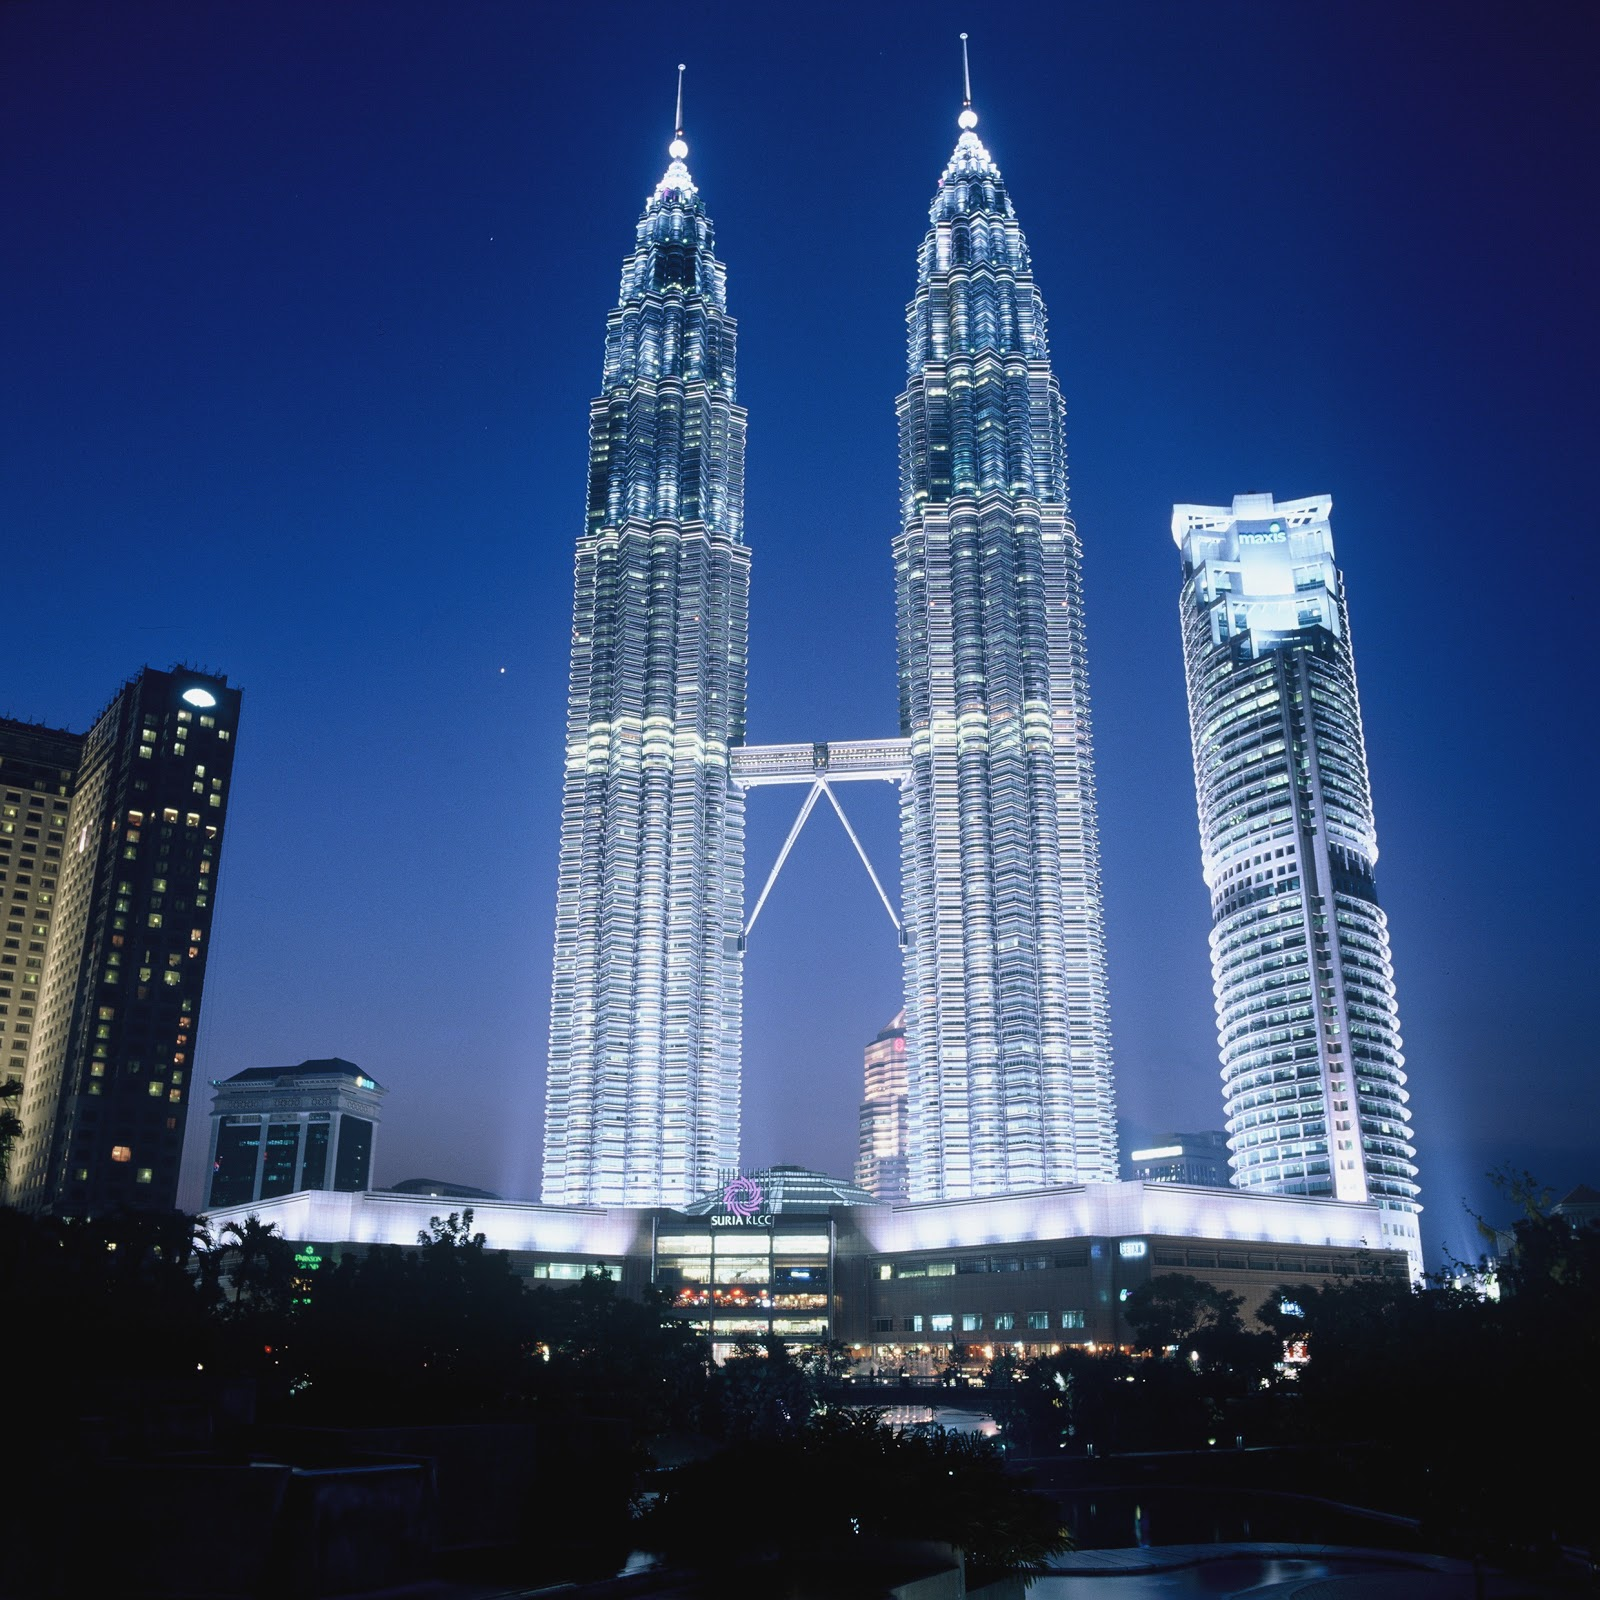 About Malaysia: Malaysia City Wallpaper